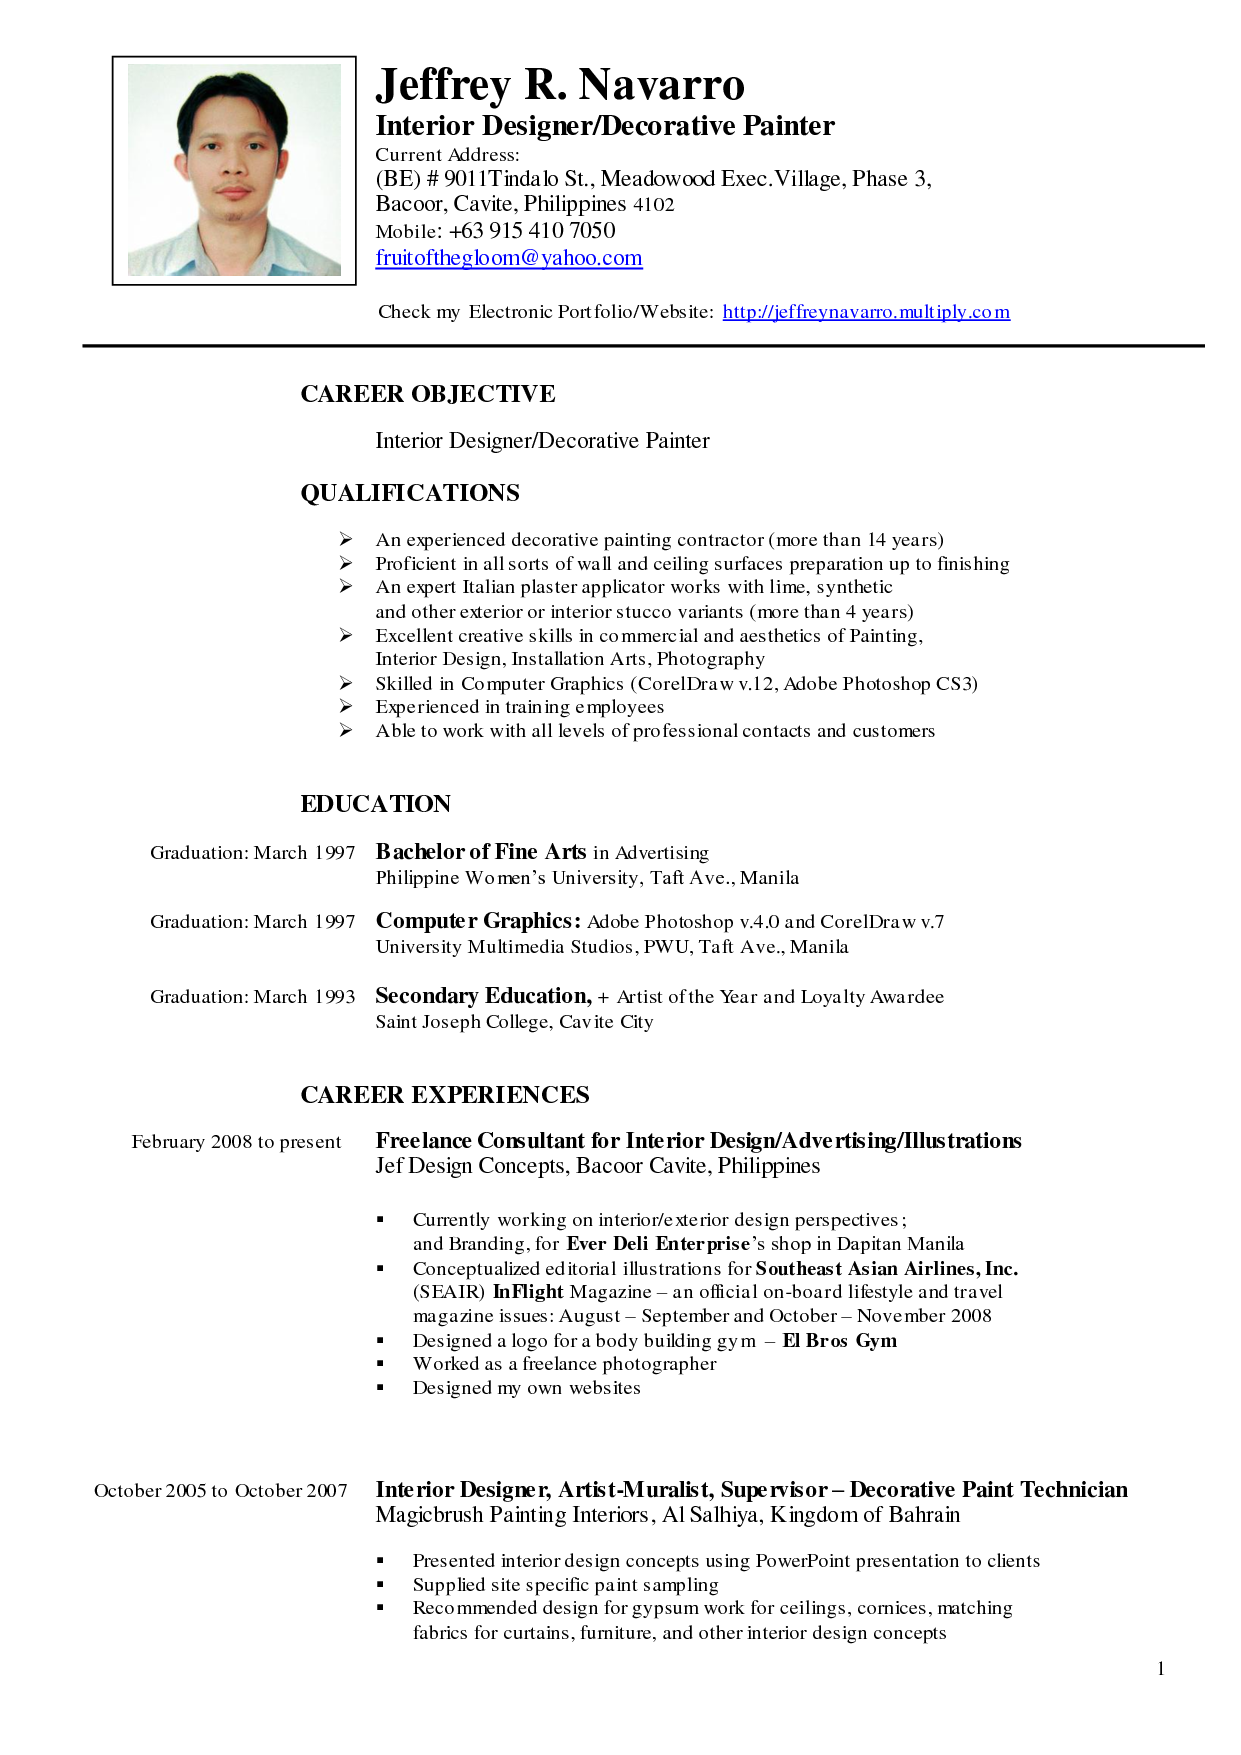 sample resume with picture philippines